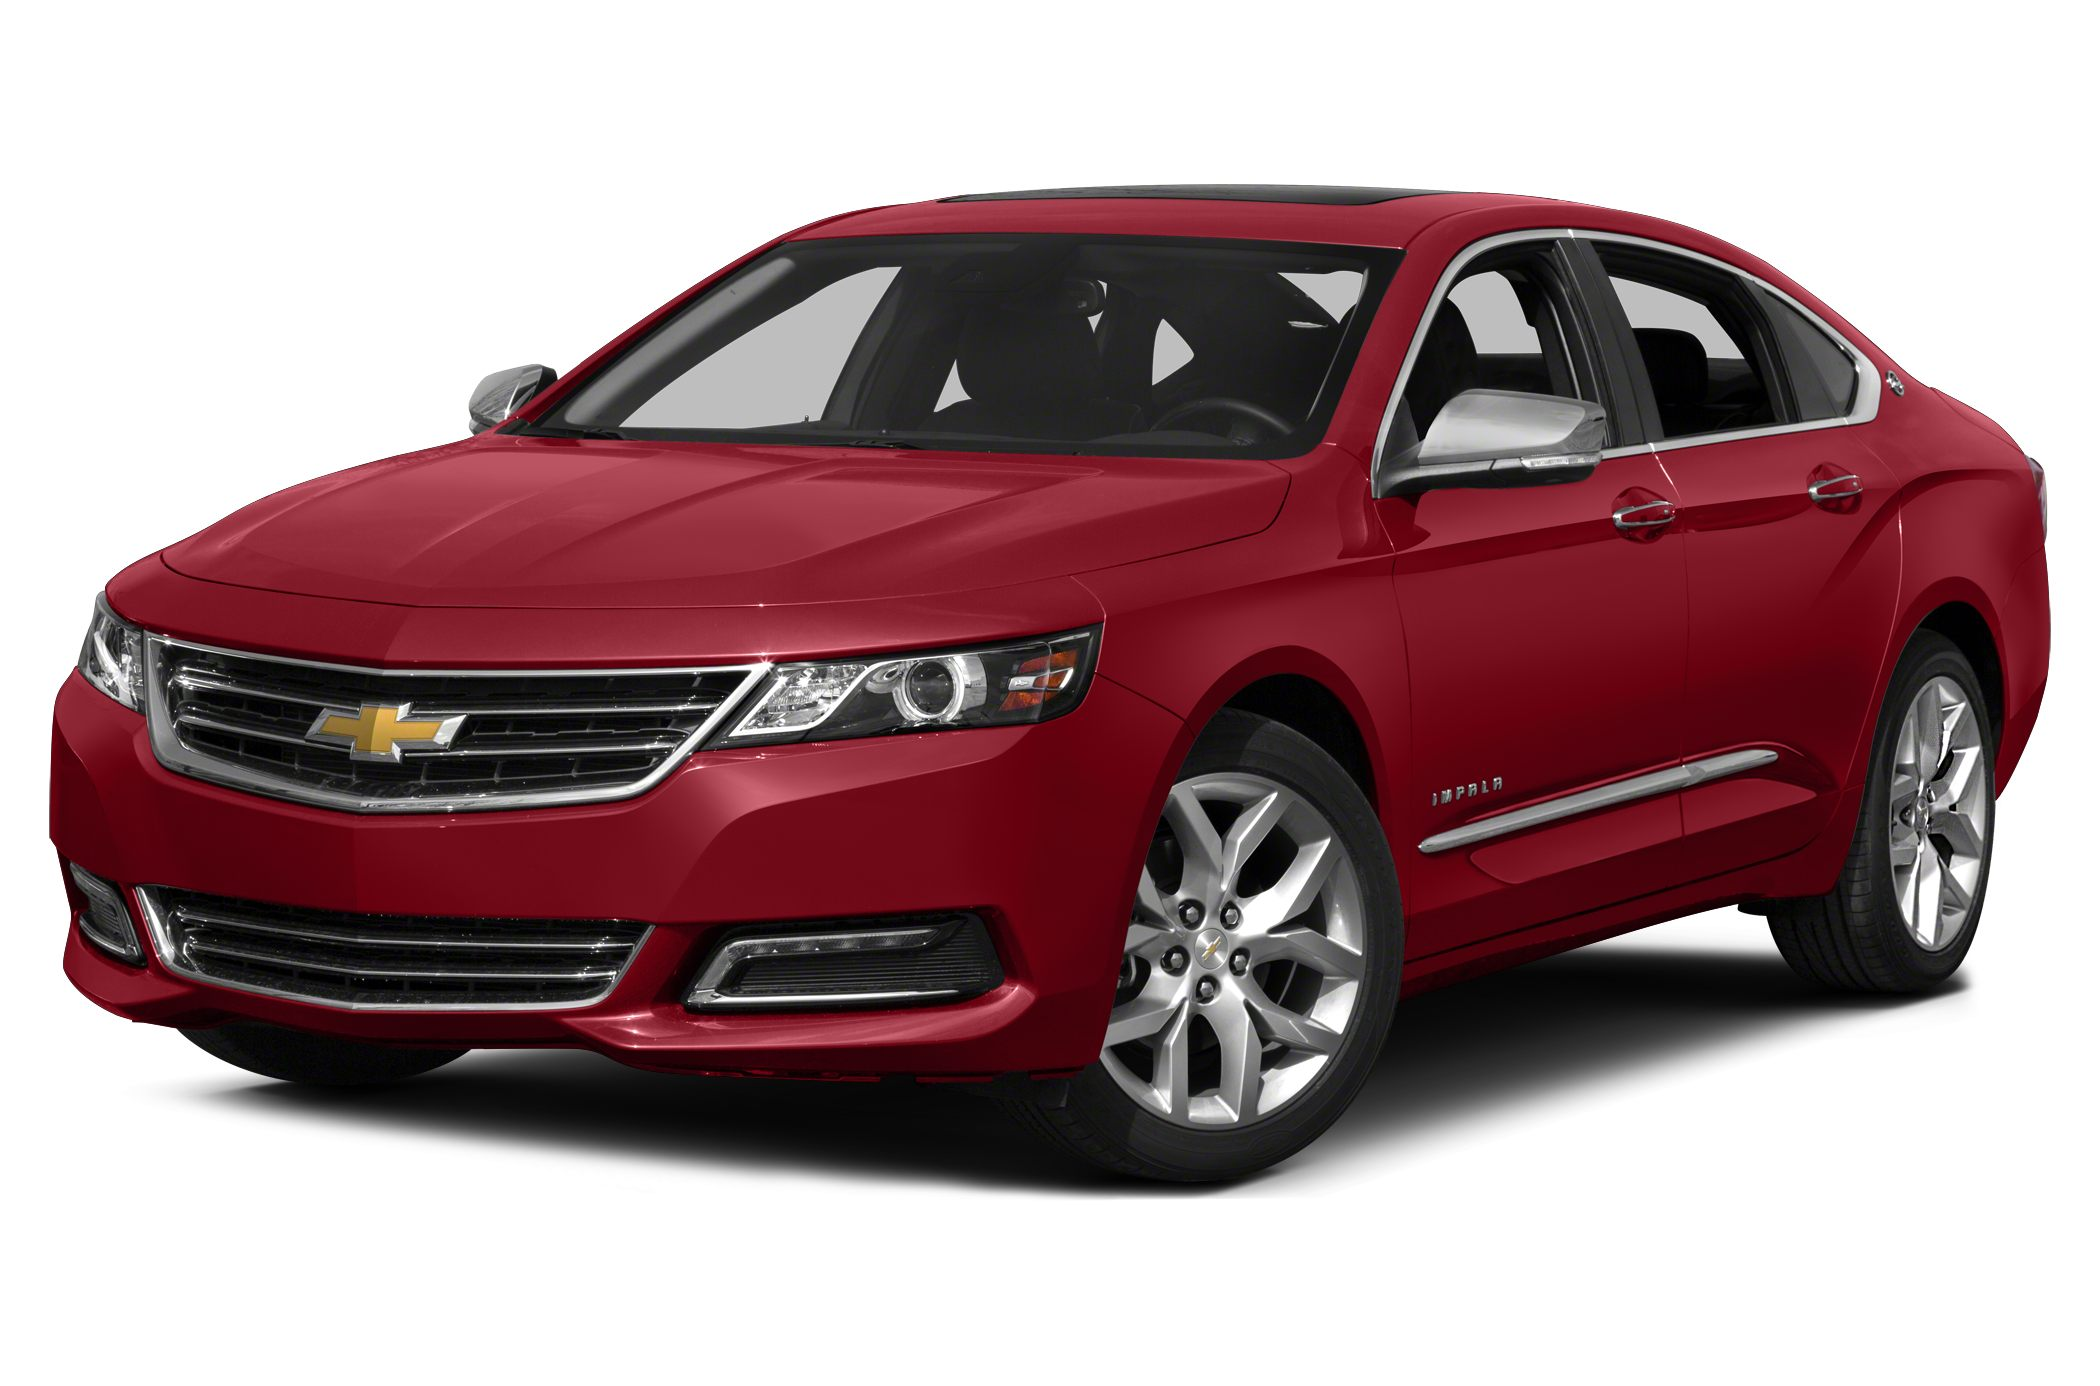 2015 Chevrolet Impala 2LT Sedan for sale in Dalton for $31,310 with 0 miles